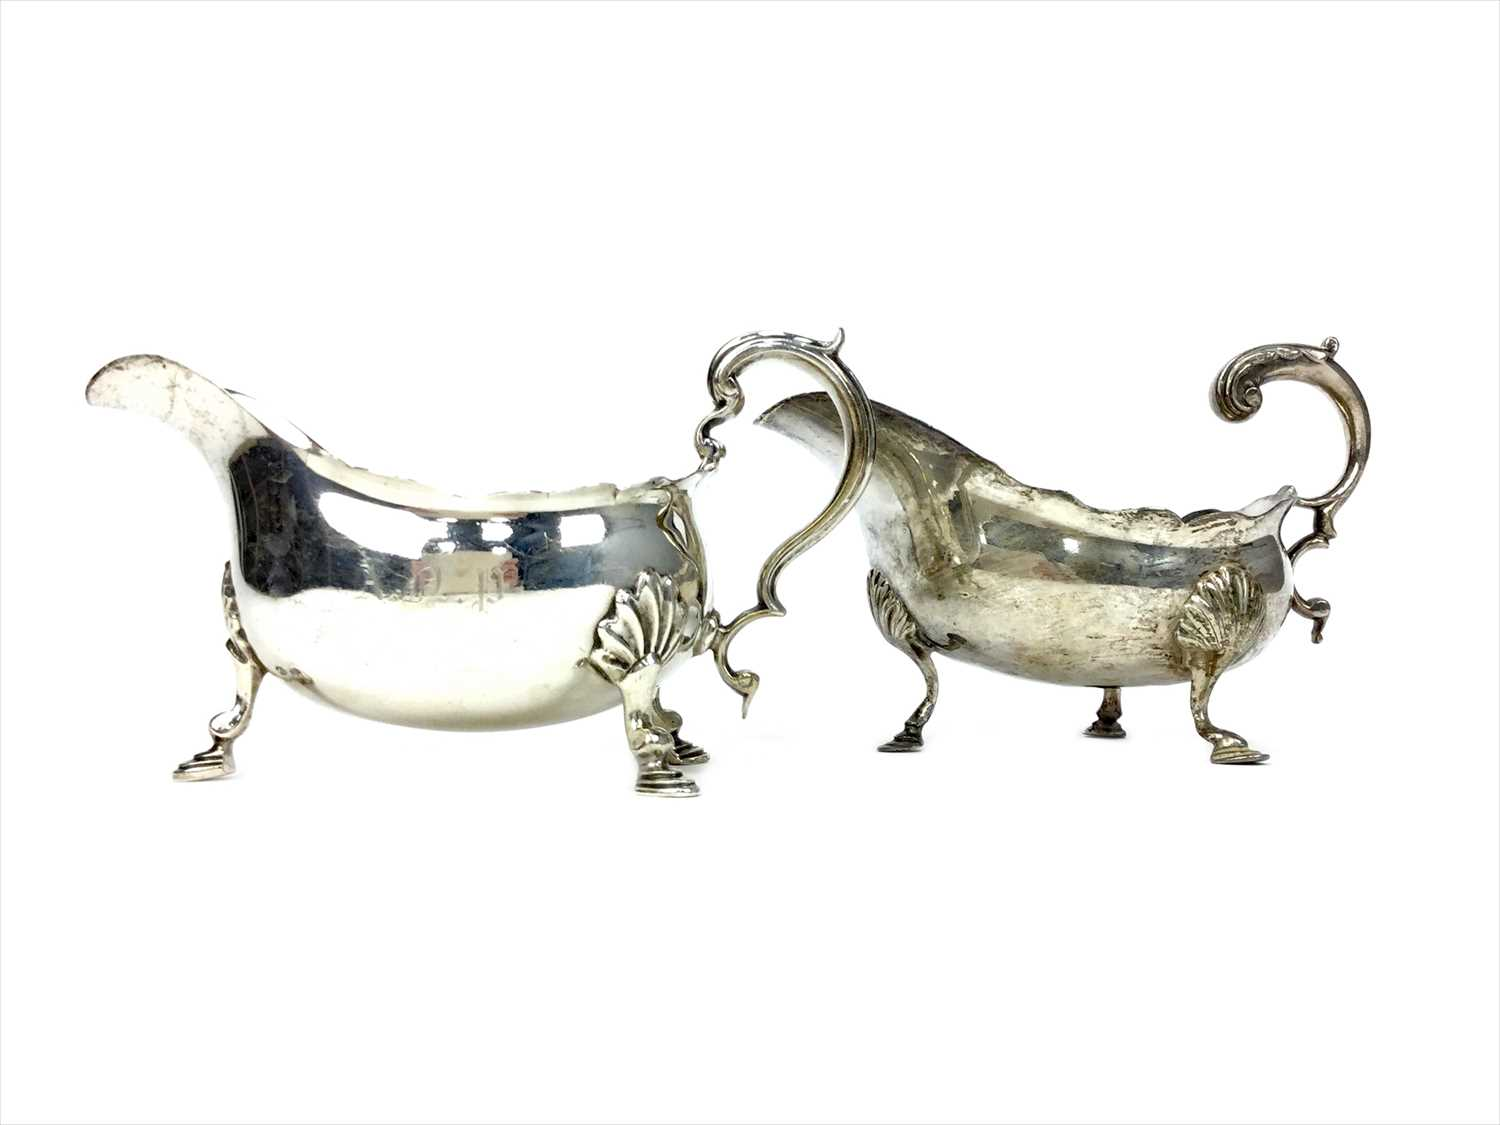 Lot 806 - A LOT OF TWO SILVER SAUCE BOATS